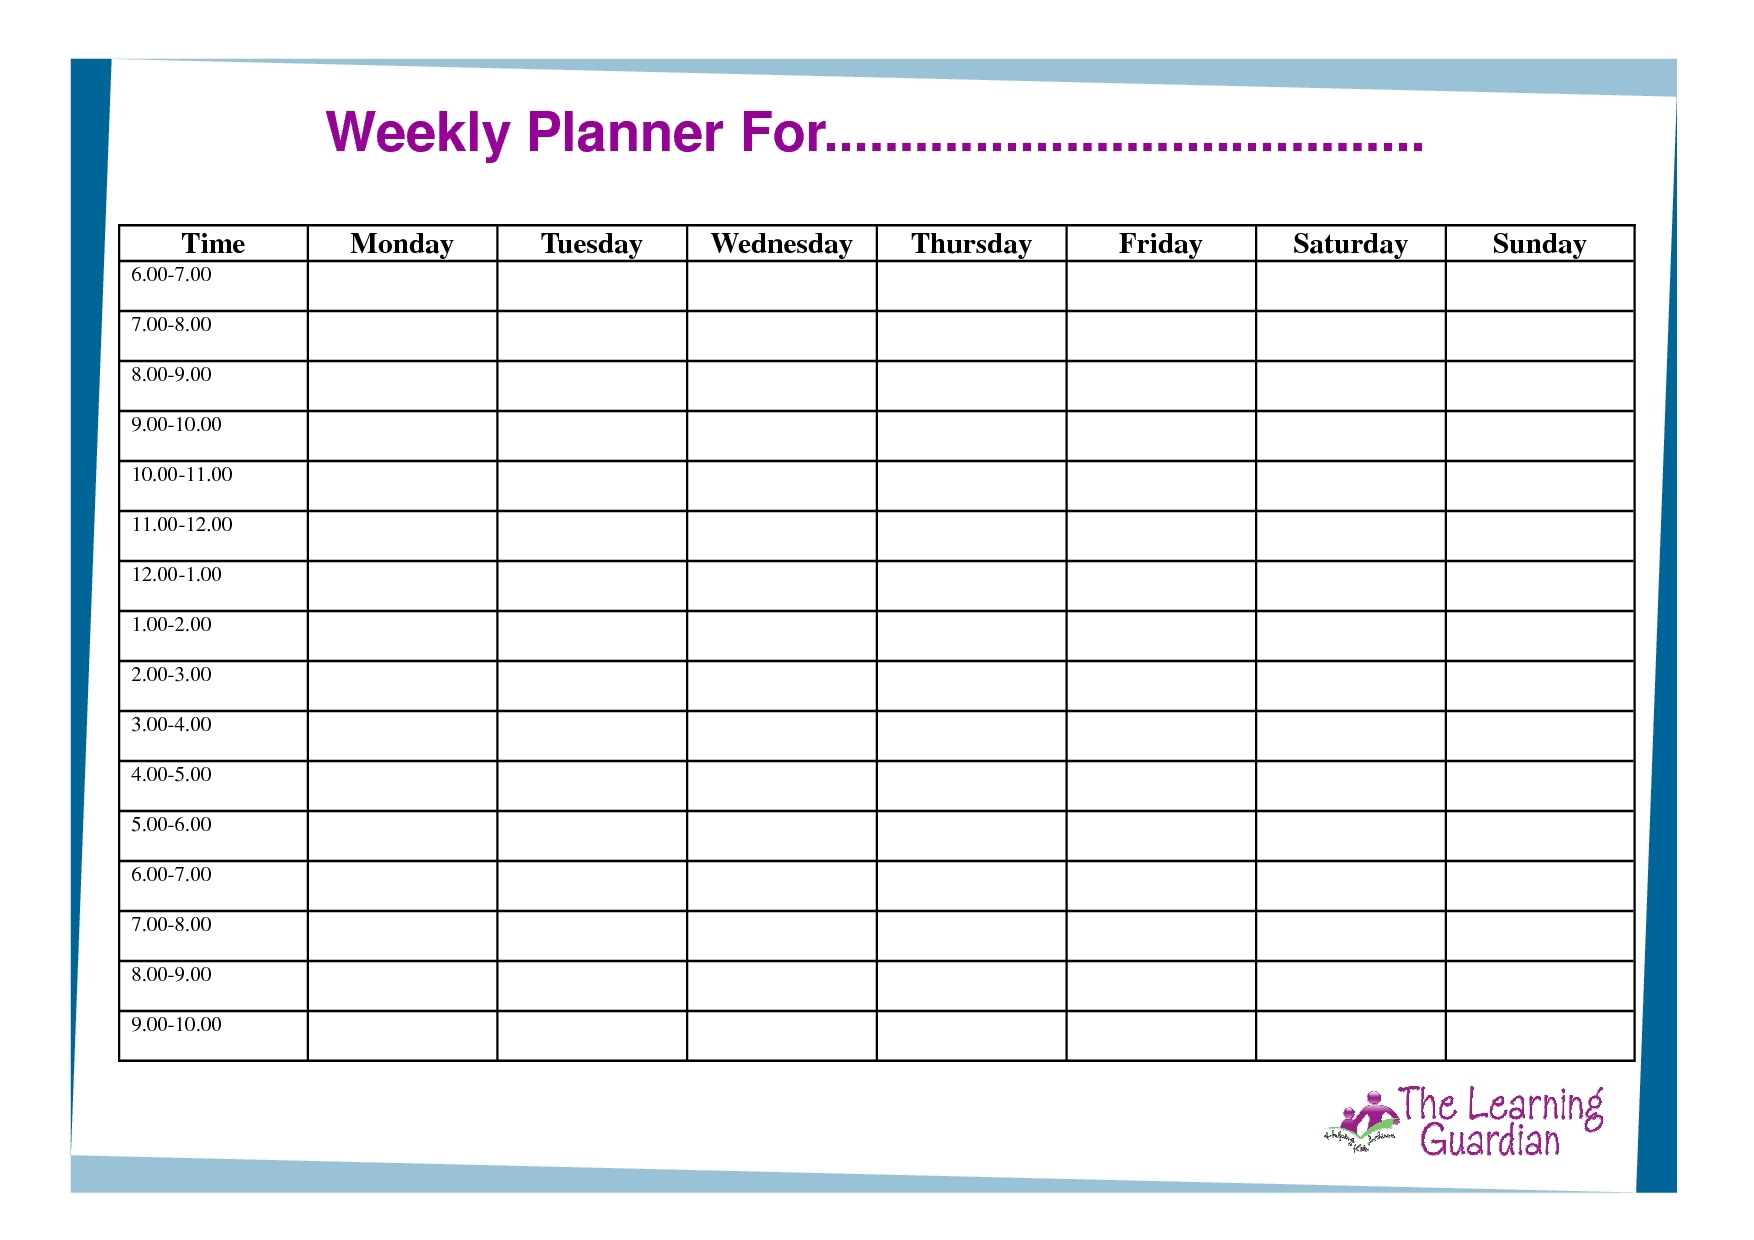 Blank Weekly Calendar Monday Through Friday Schedule Template Free throughout Printable Weekly Schedule Monday Through Friday